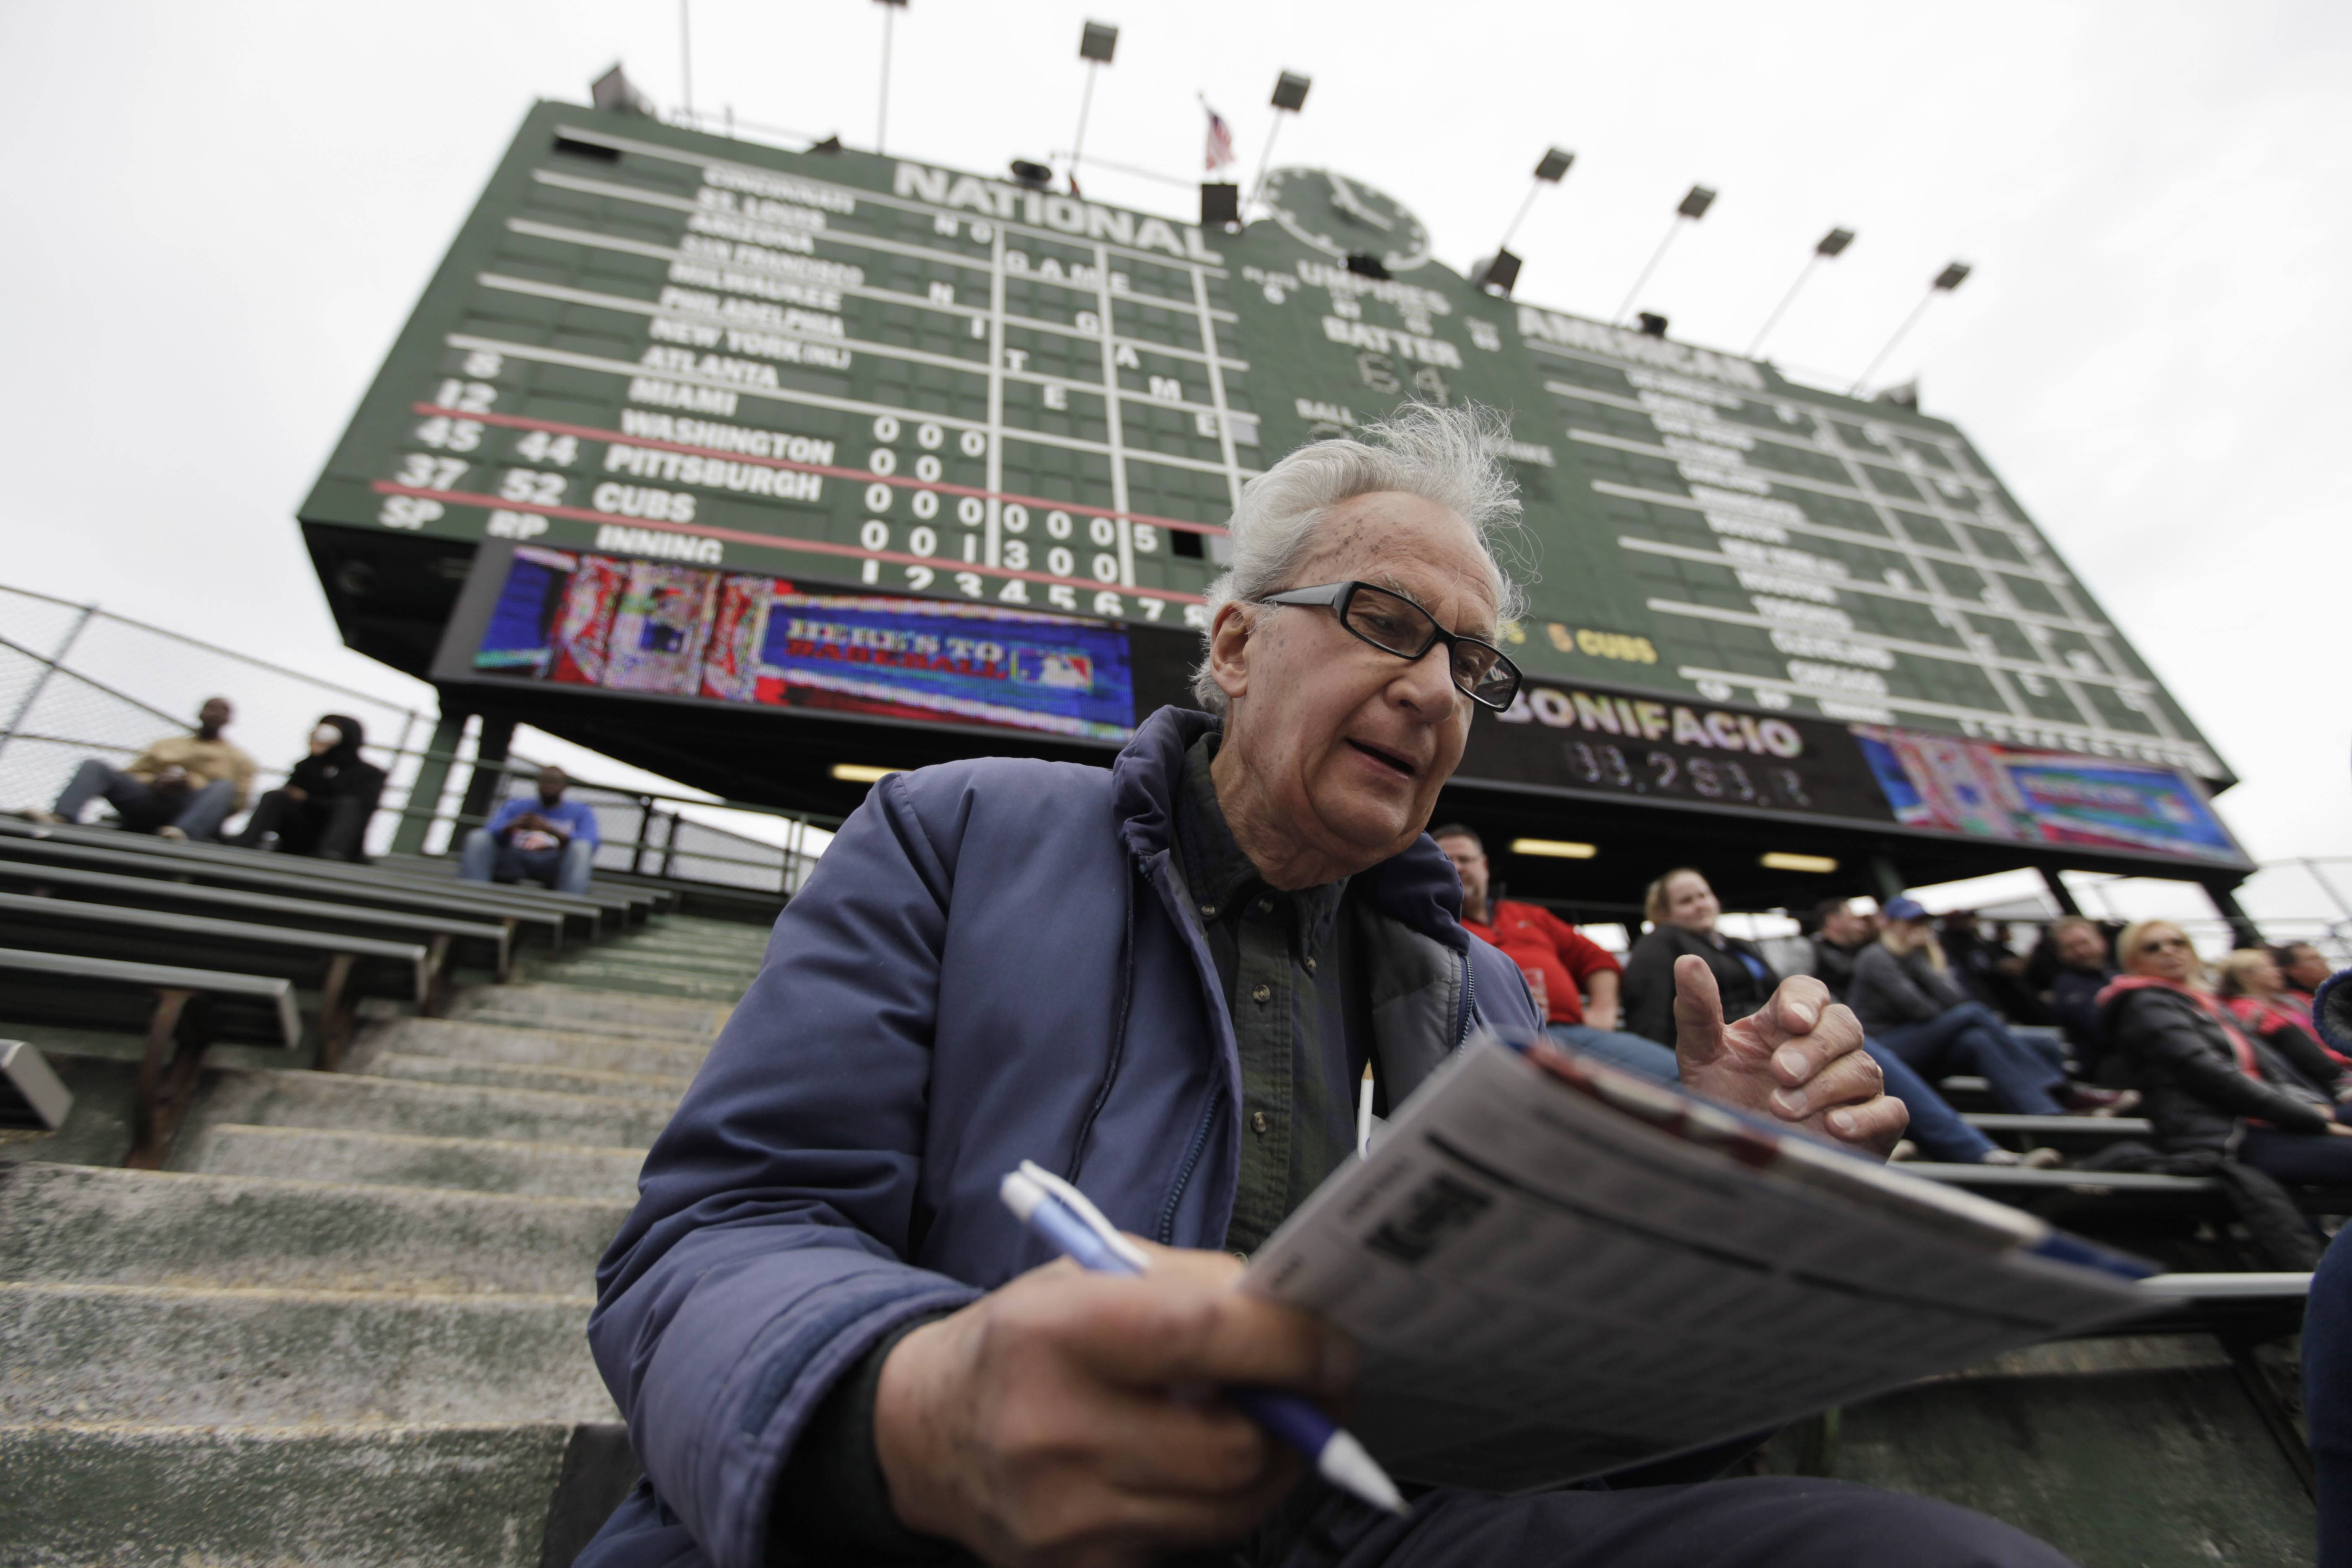 John Weber keeps score with a pencil and scorecard as he watches a baseball game between Pittsburgh Pirates and Chicago Cubs at Wrgley Field.